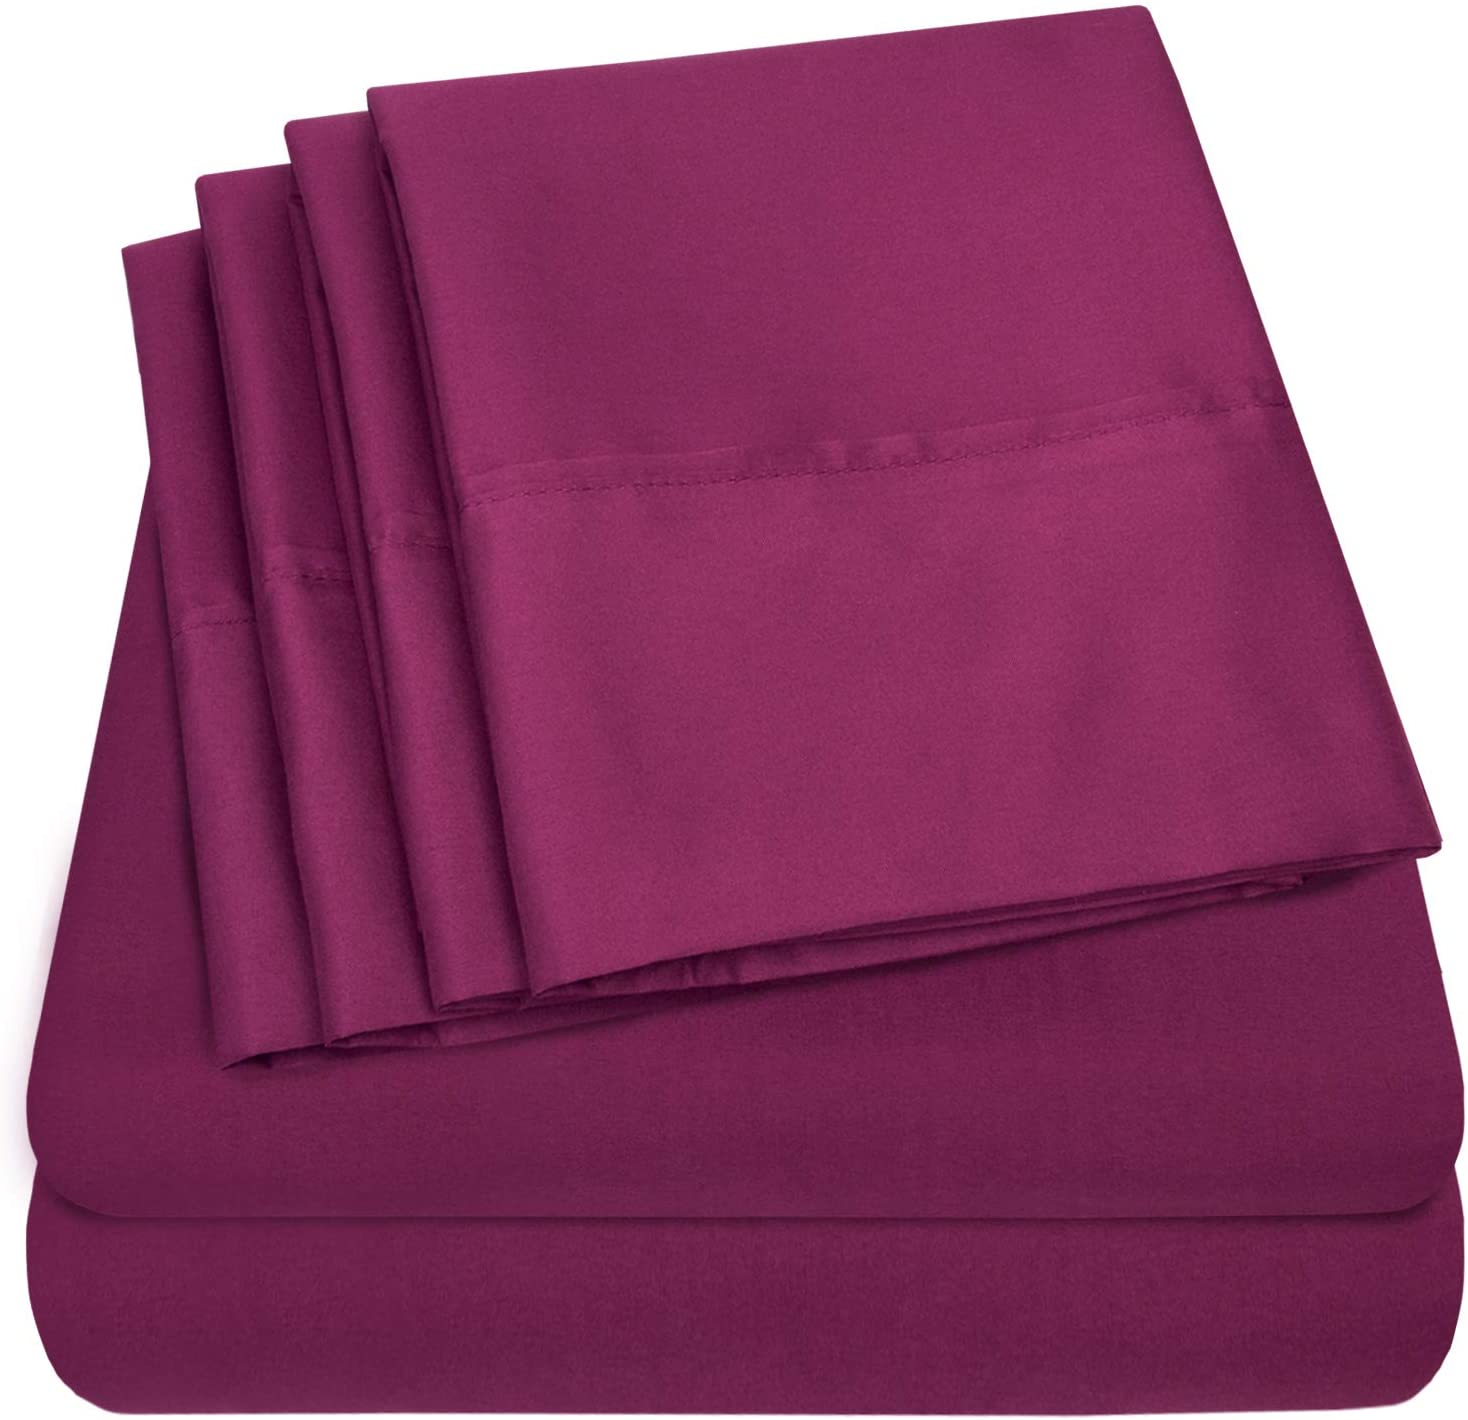 Queen Sheets Berry - 6 Piece 1500 Thread Count Fine Brushed Microfiber Deep Pocket Queen Sheet Set Bedding - 2 Extra Pillow Cases, Great Value, Queen, Berry